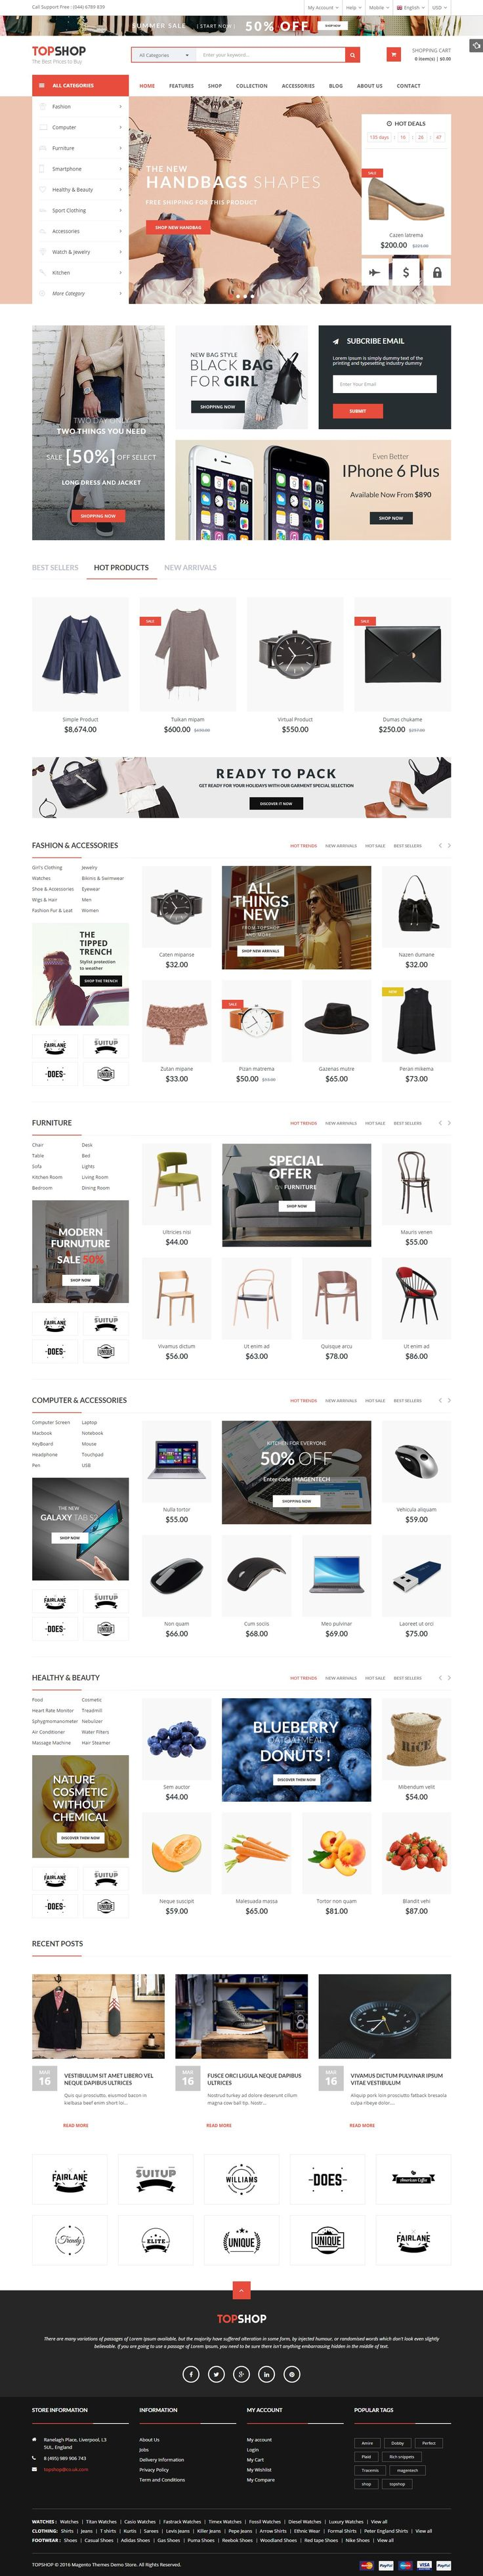 The beautiful theme designed with modern style trend, clear layout and supports lots of powerful features: Image Slider, Mega Menu, Ajax Layered Navigation, Ajax Cart helps customers purchase more quickly, multi-language, multi-currency, brands slider and product hover effects.#magento #eCommerce #fashion #store